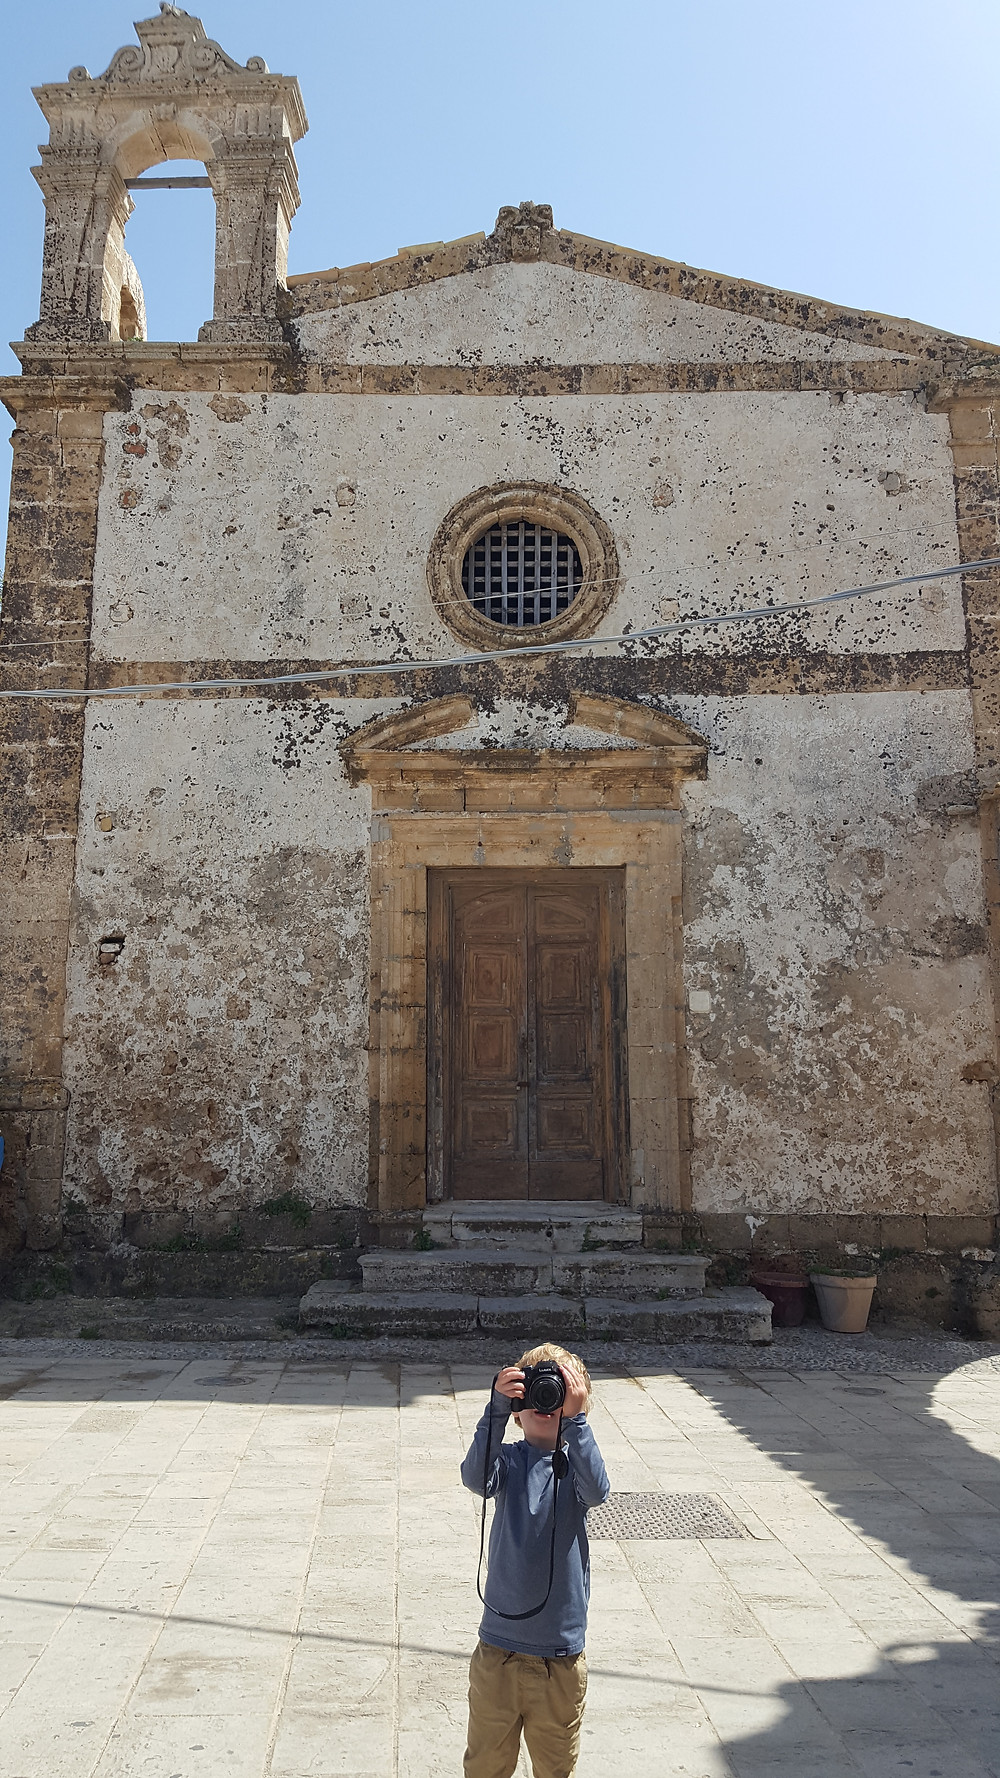 Boy taking a picture in front of a church in Sicily Italy